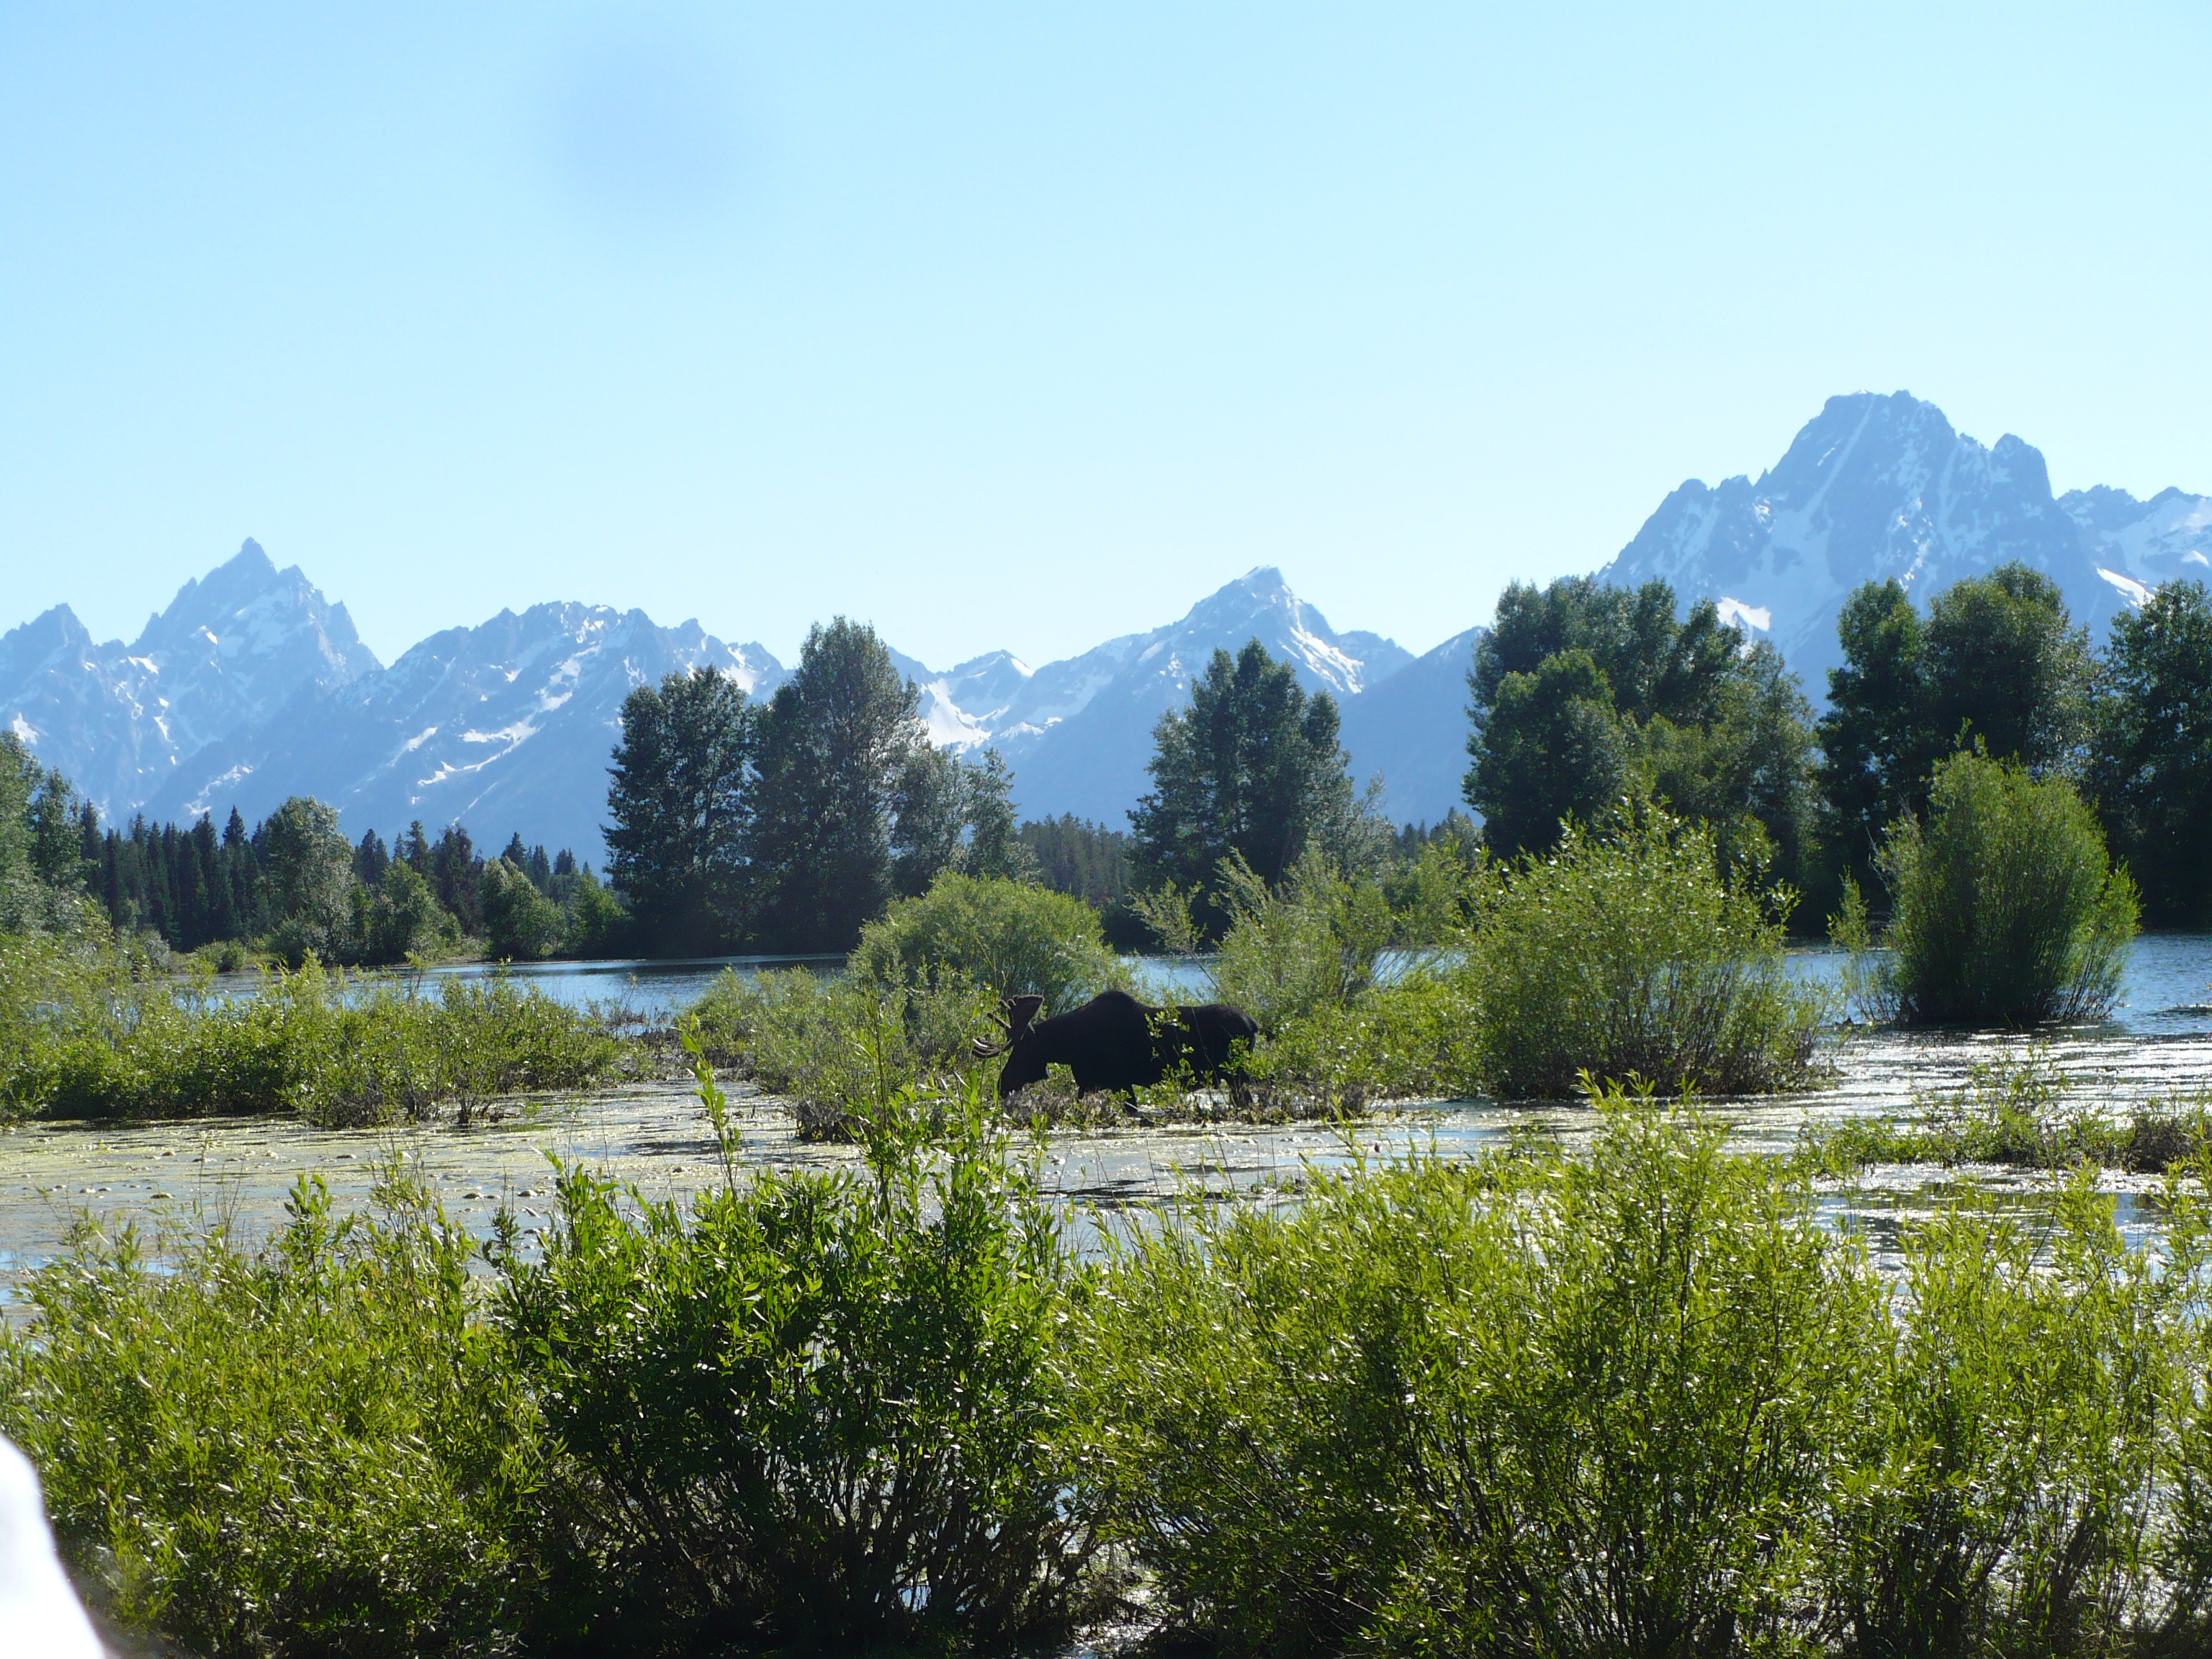 A magnificent view of the Tetons with the moose in the foreground. Photo: Nurin Merchant. Copyright.